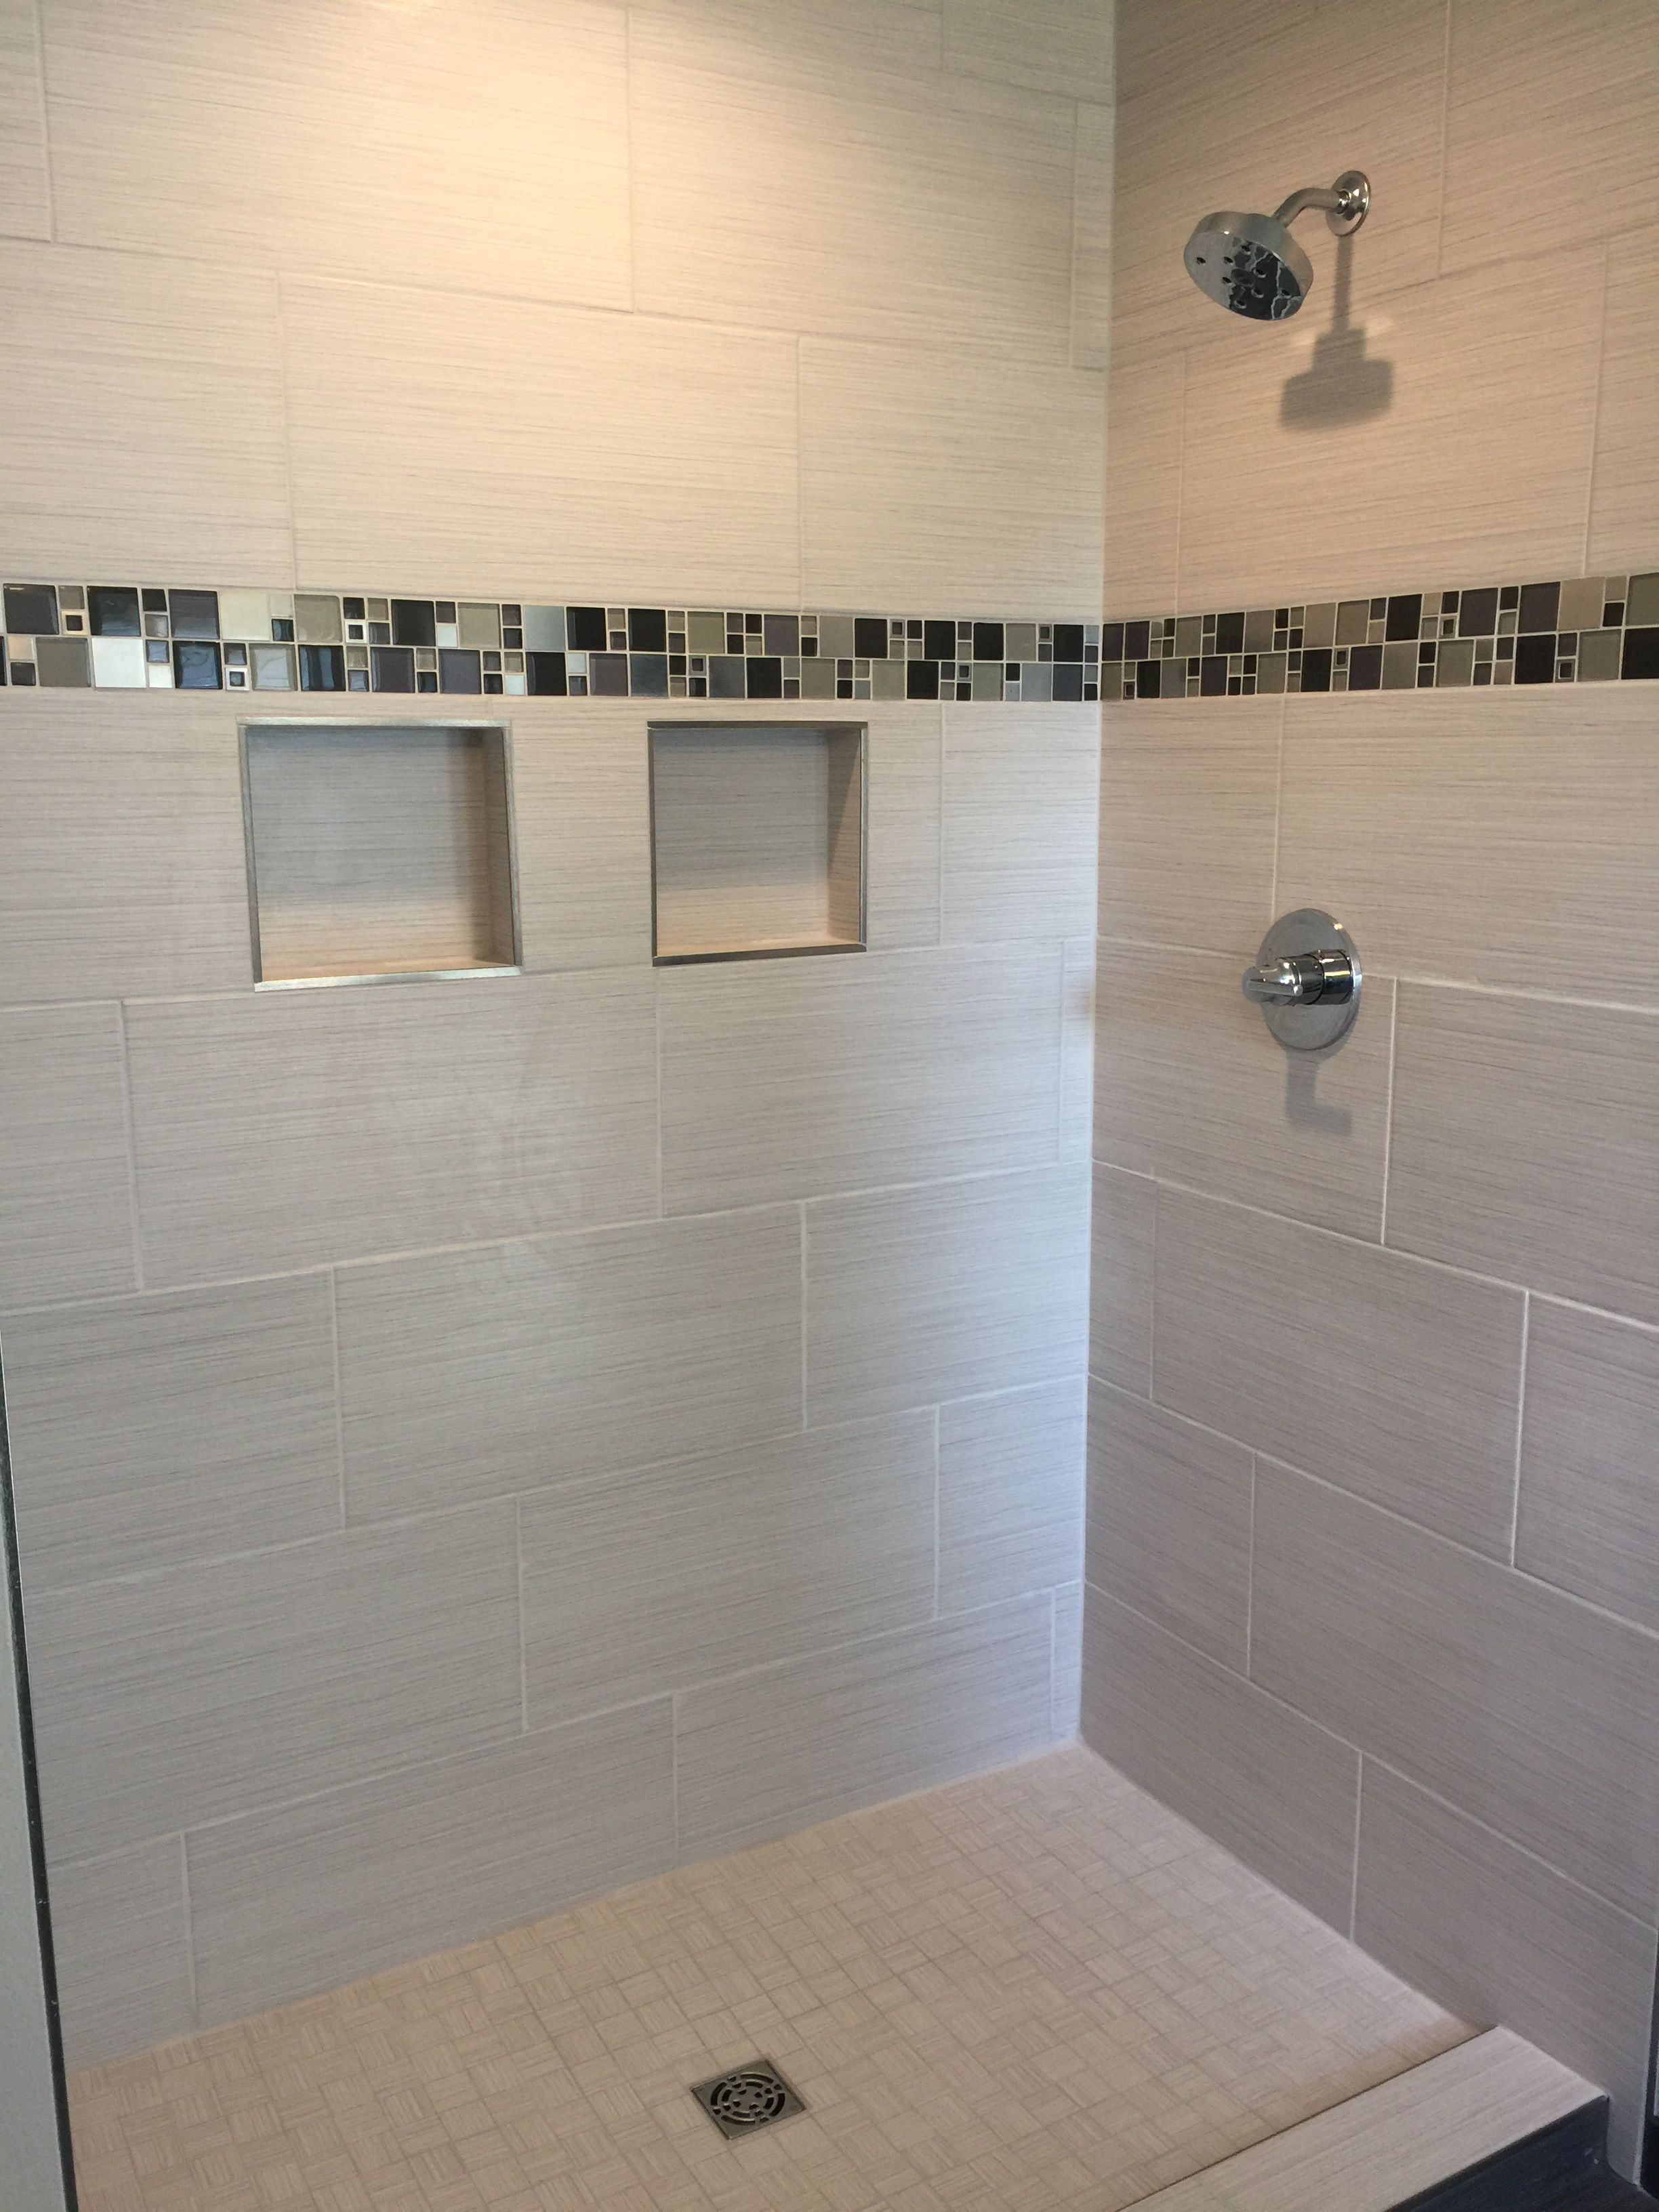 Custom Tiled Shower With 12x24 Satiated Tile Run 1/3 Staggered Vertically  With A Glass And Metal Mosaic Accent Strip.